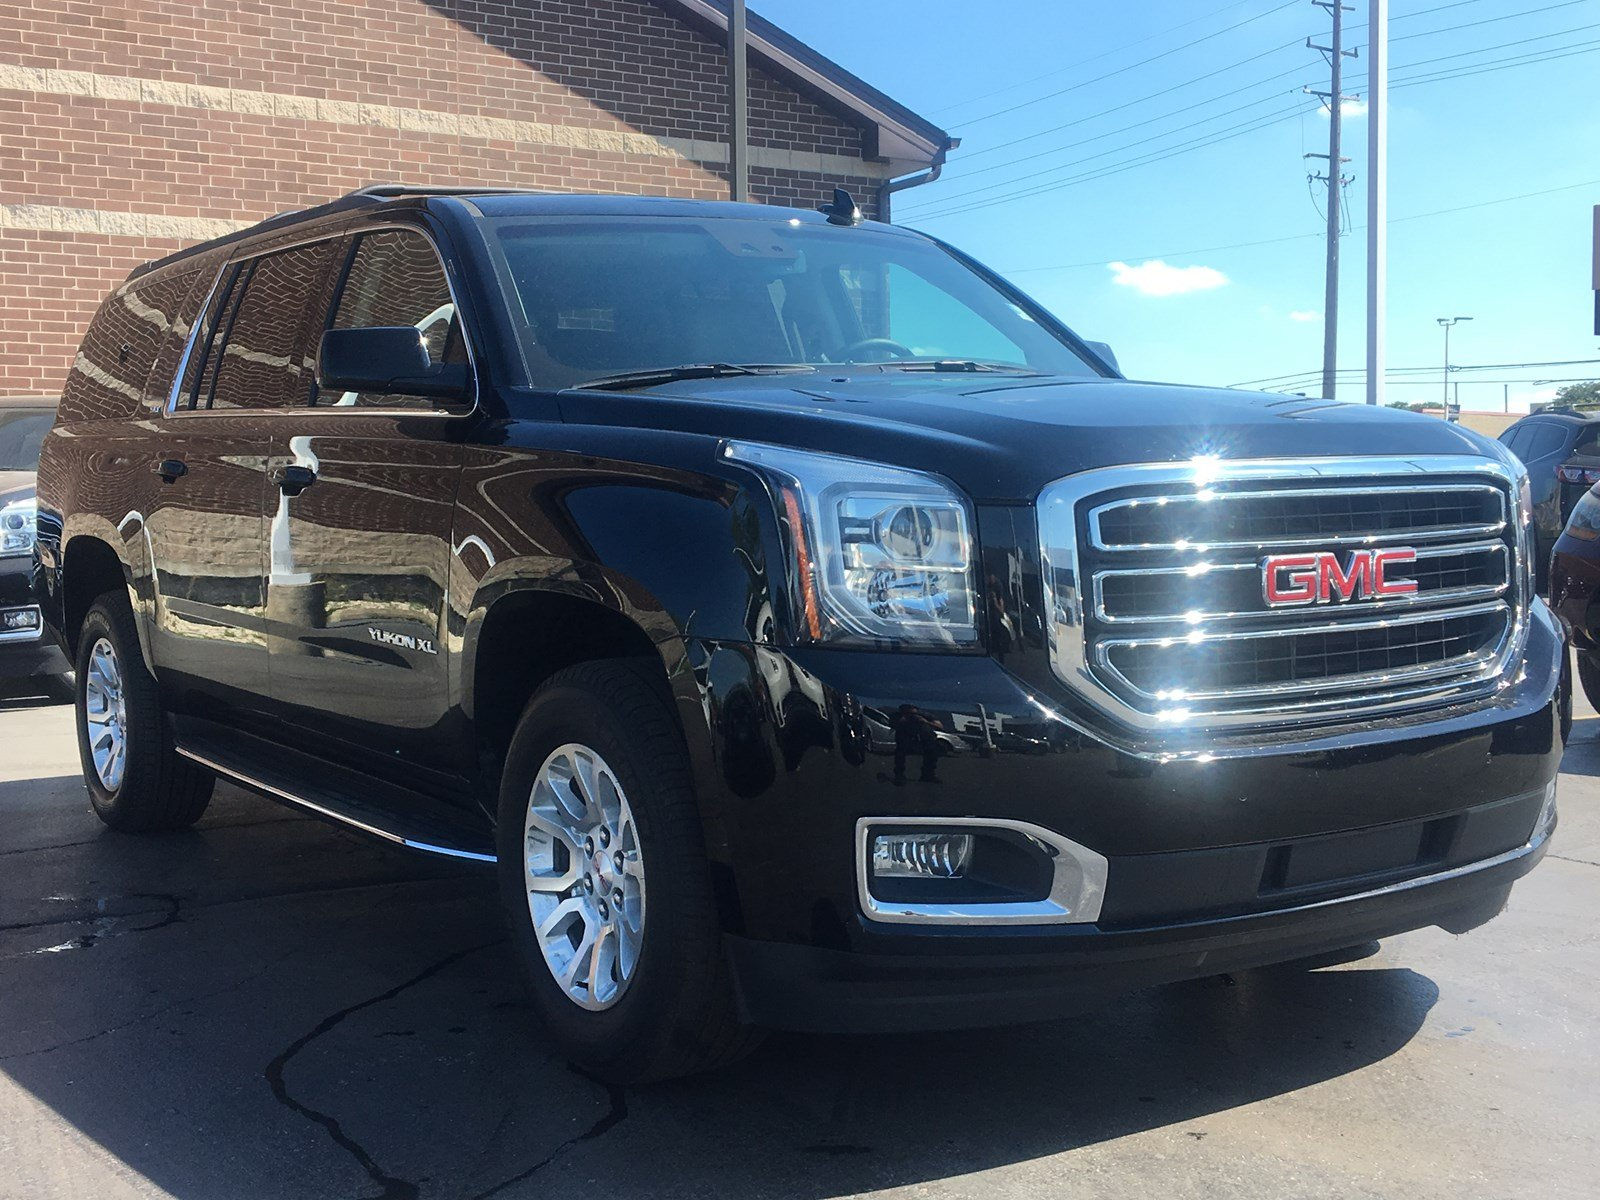 Certified Pre-Owned 2018 GMC 4wd Yukon XL Navigation Sunroof SLT